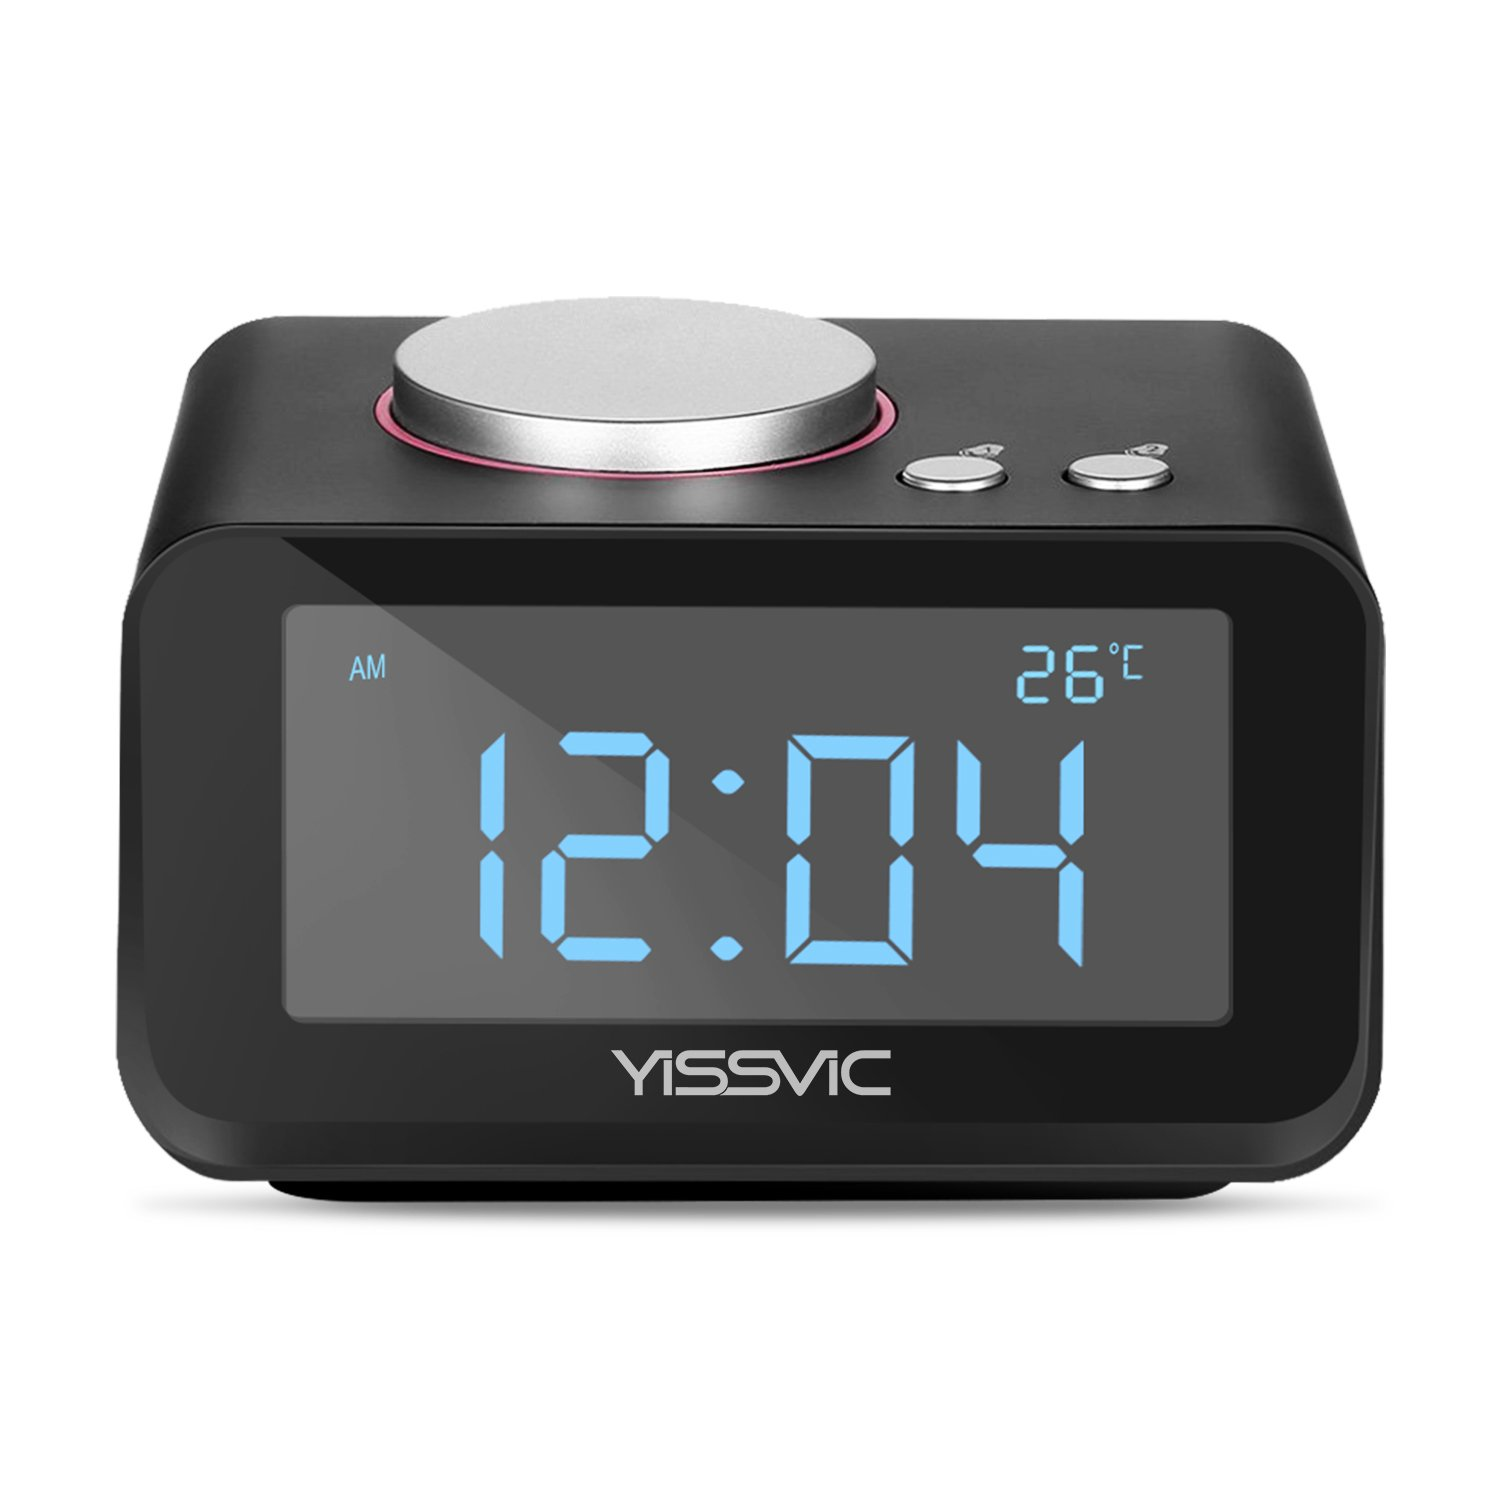 """YISSVIC Digital Alarm Clock with 3.2"""" Display FM Radio AUX-IN Speaker Indoor Thermometer 2 USB Charger Port Snooze and Dual Alarm for Bedroom Black"""